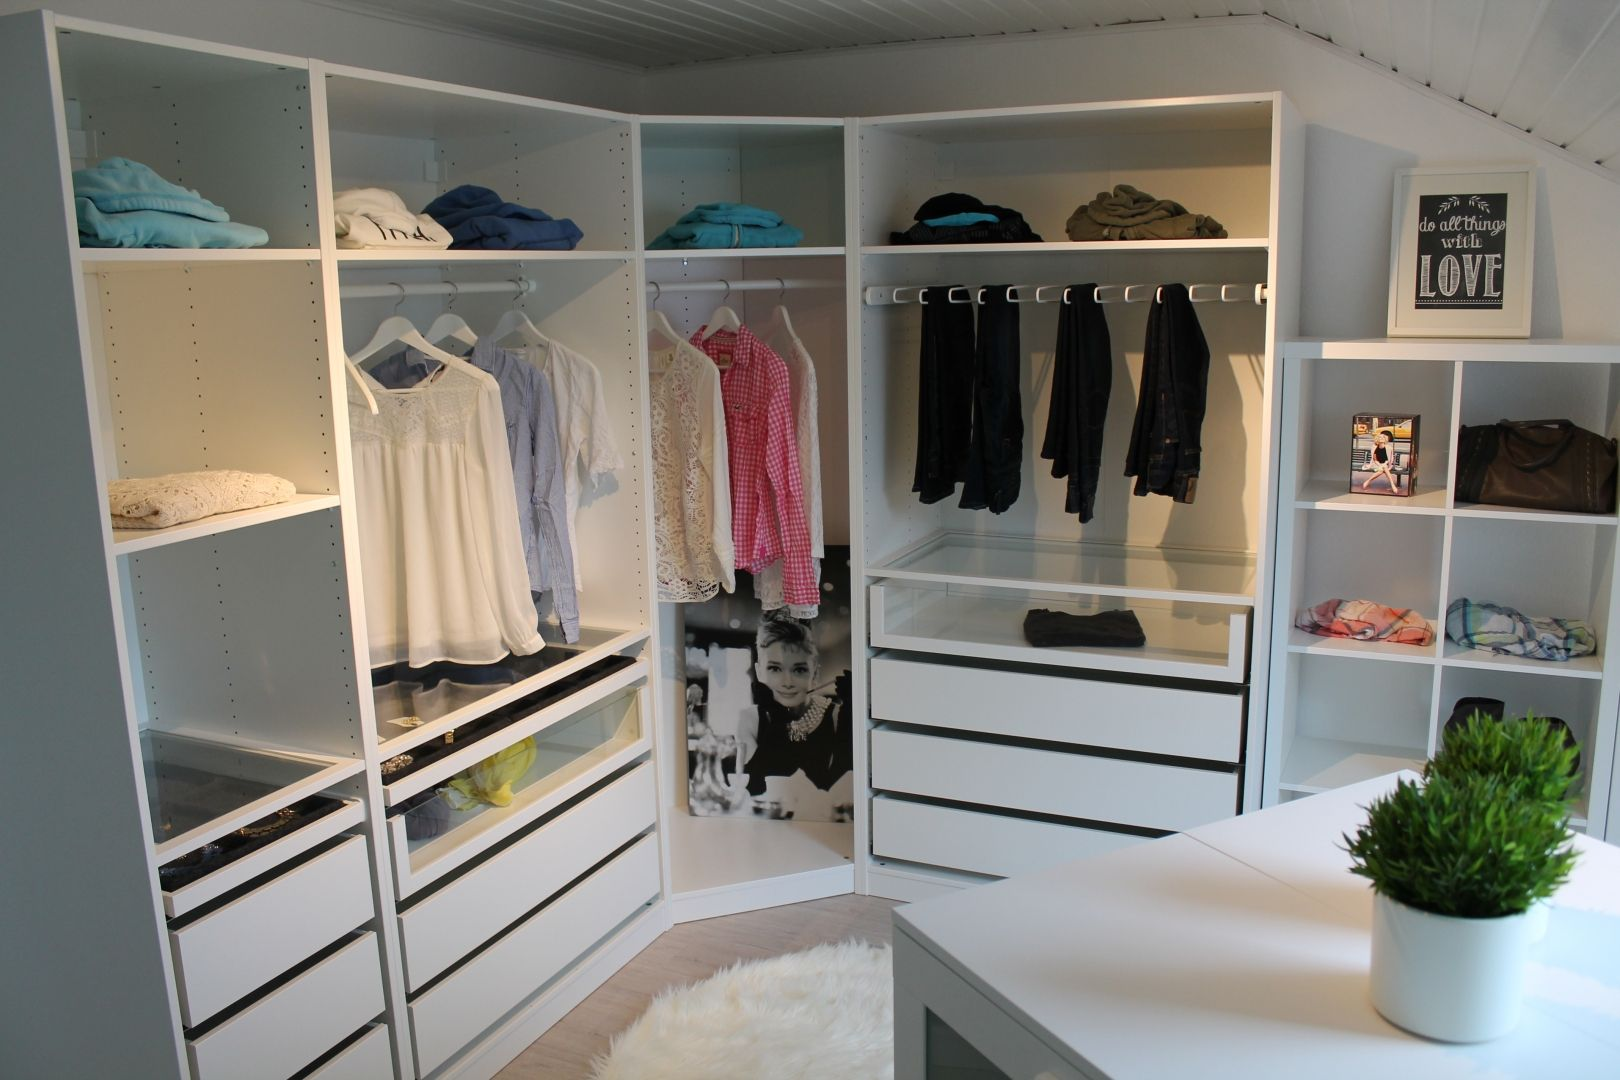 Ankleidezimmer ikea pax  IKEA PAX is a girls best friend... | CLOSET | Pinterest ...